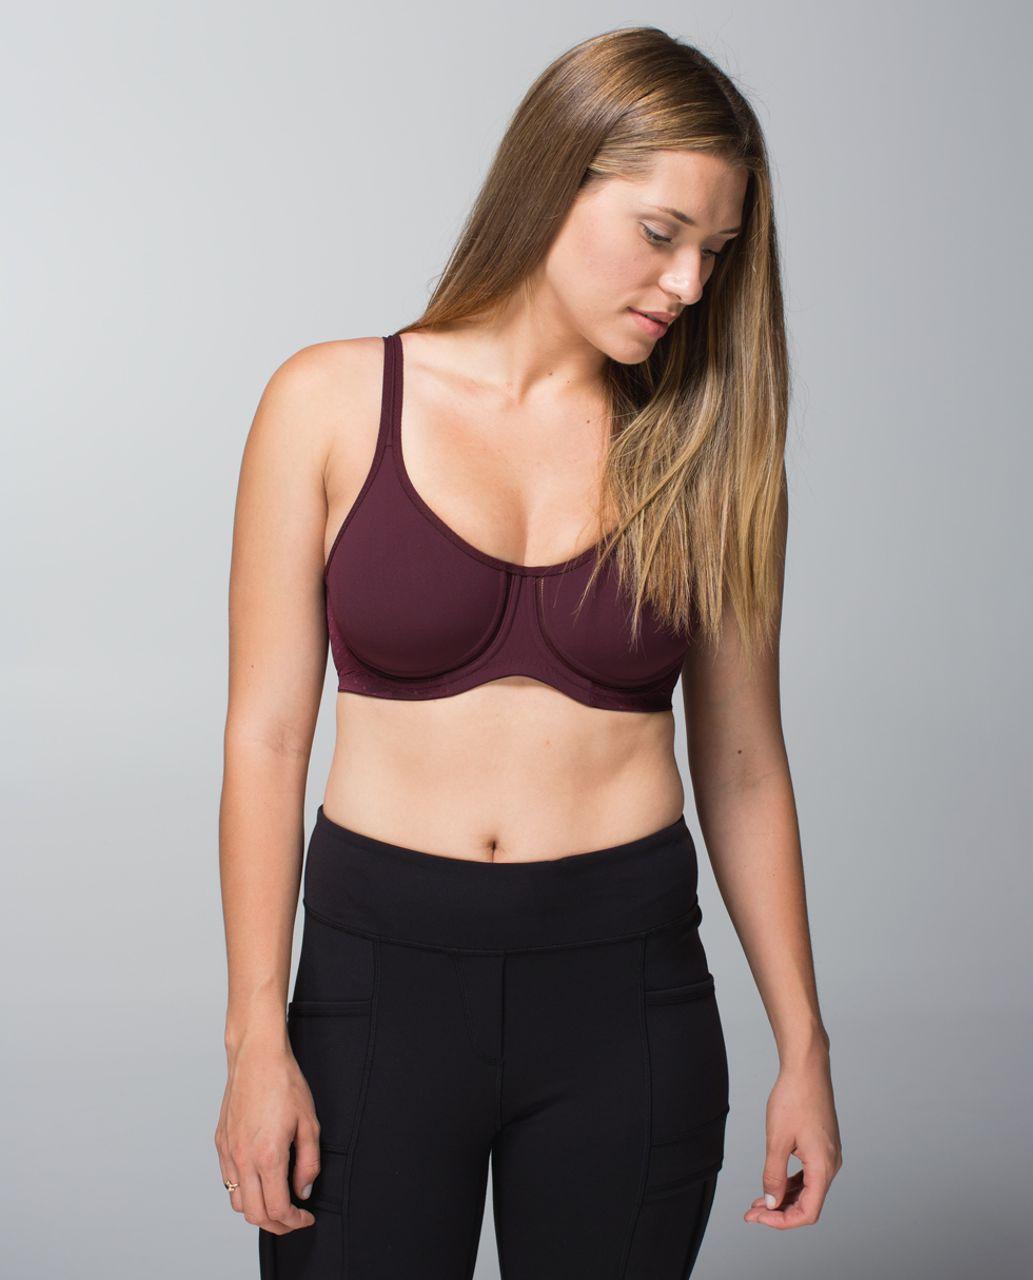 Lululemon Boob Wired Bra - Bordeaux Drama